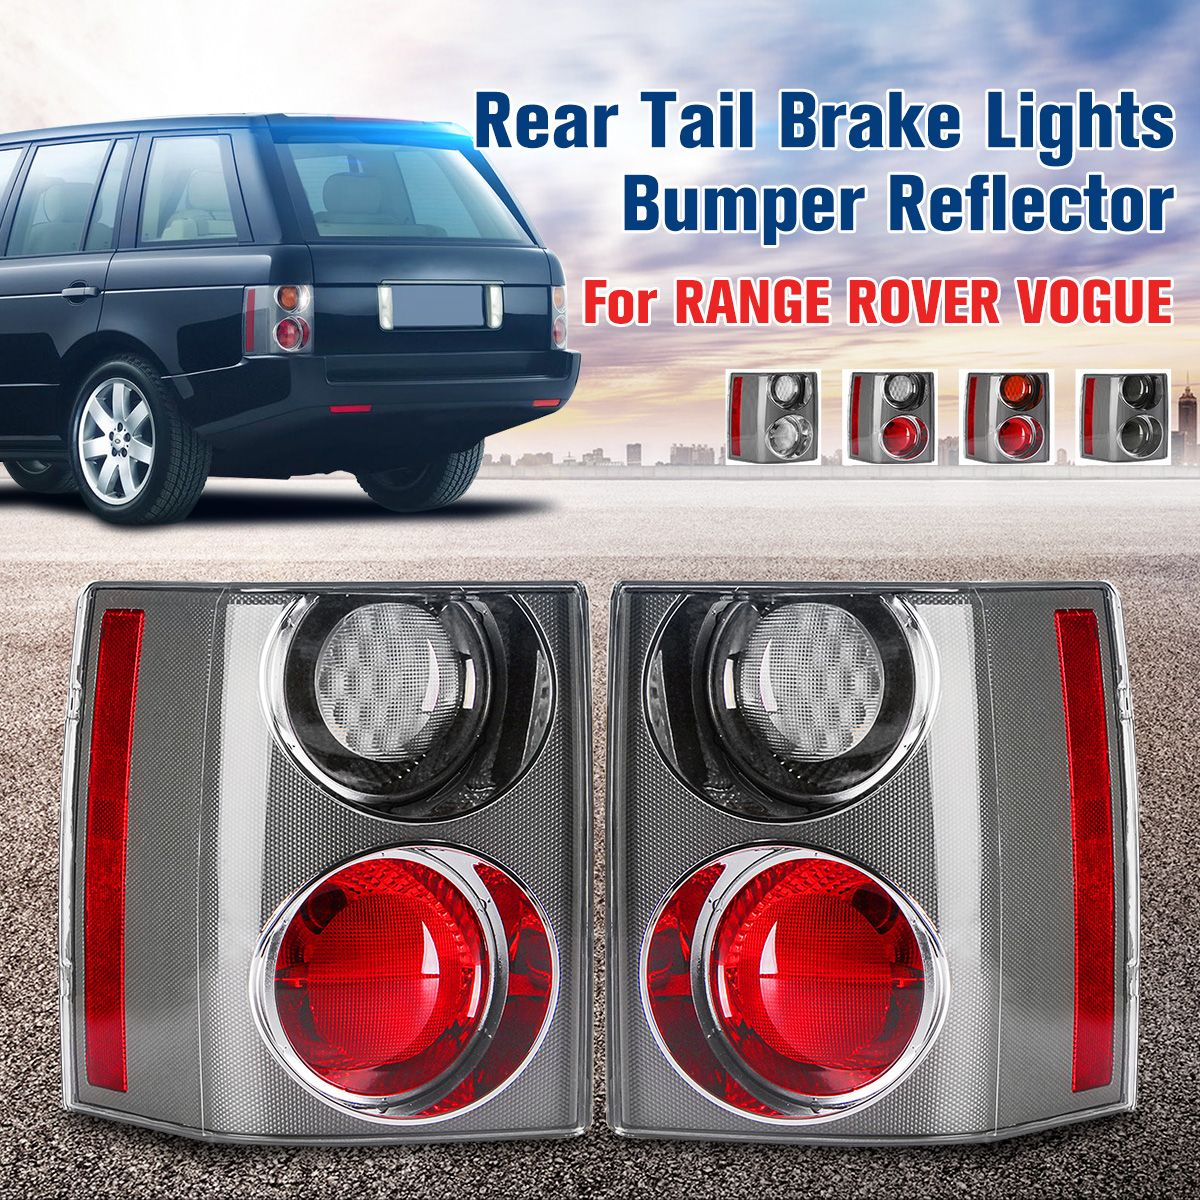 1 Pair Rear Tail Brake Lights Bumper Reflector Tail Brake Stop Light For RANGE for LAND ROVER VOGUE L322 2002 2003 2004 05-2009